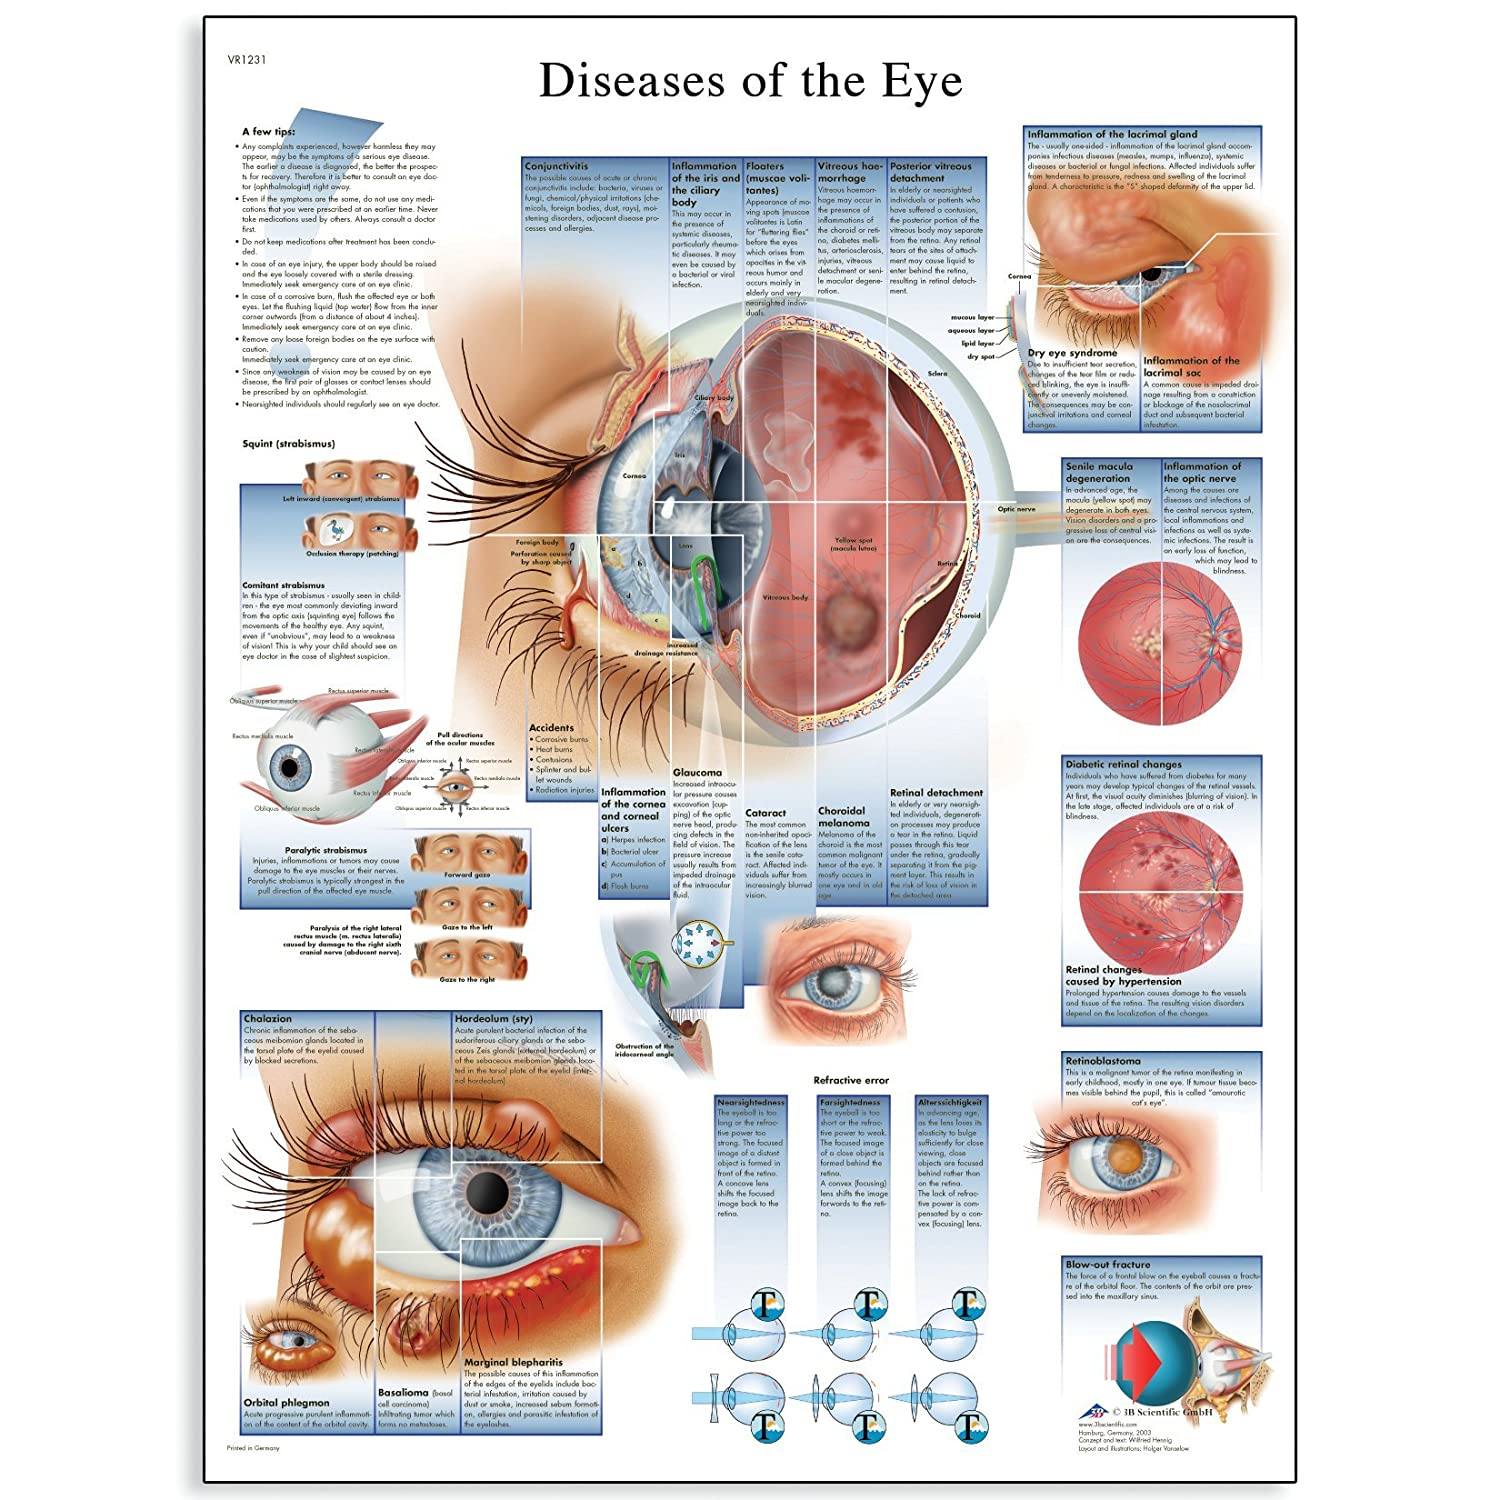 3B Scientific VR1231L Glossy Laminated Paper Diseases of The Eye Anatomical Chart, Poster Size 20' Width x 26' Height Poster Size 20 Width x 26 Height